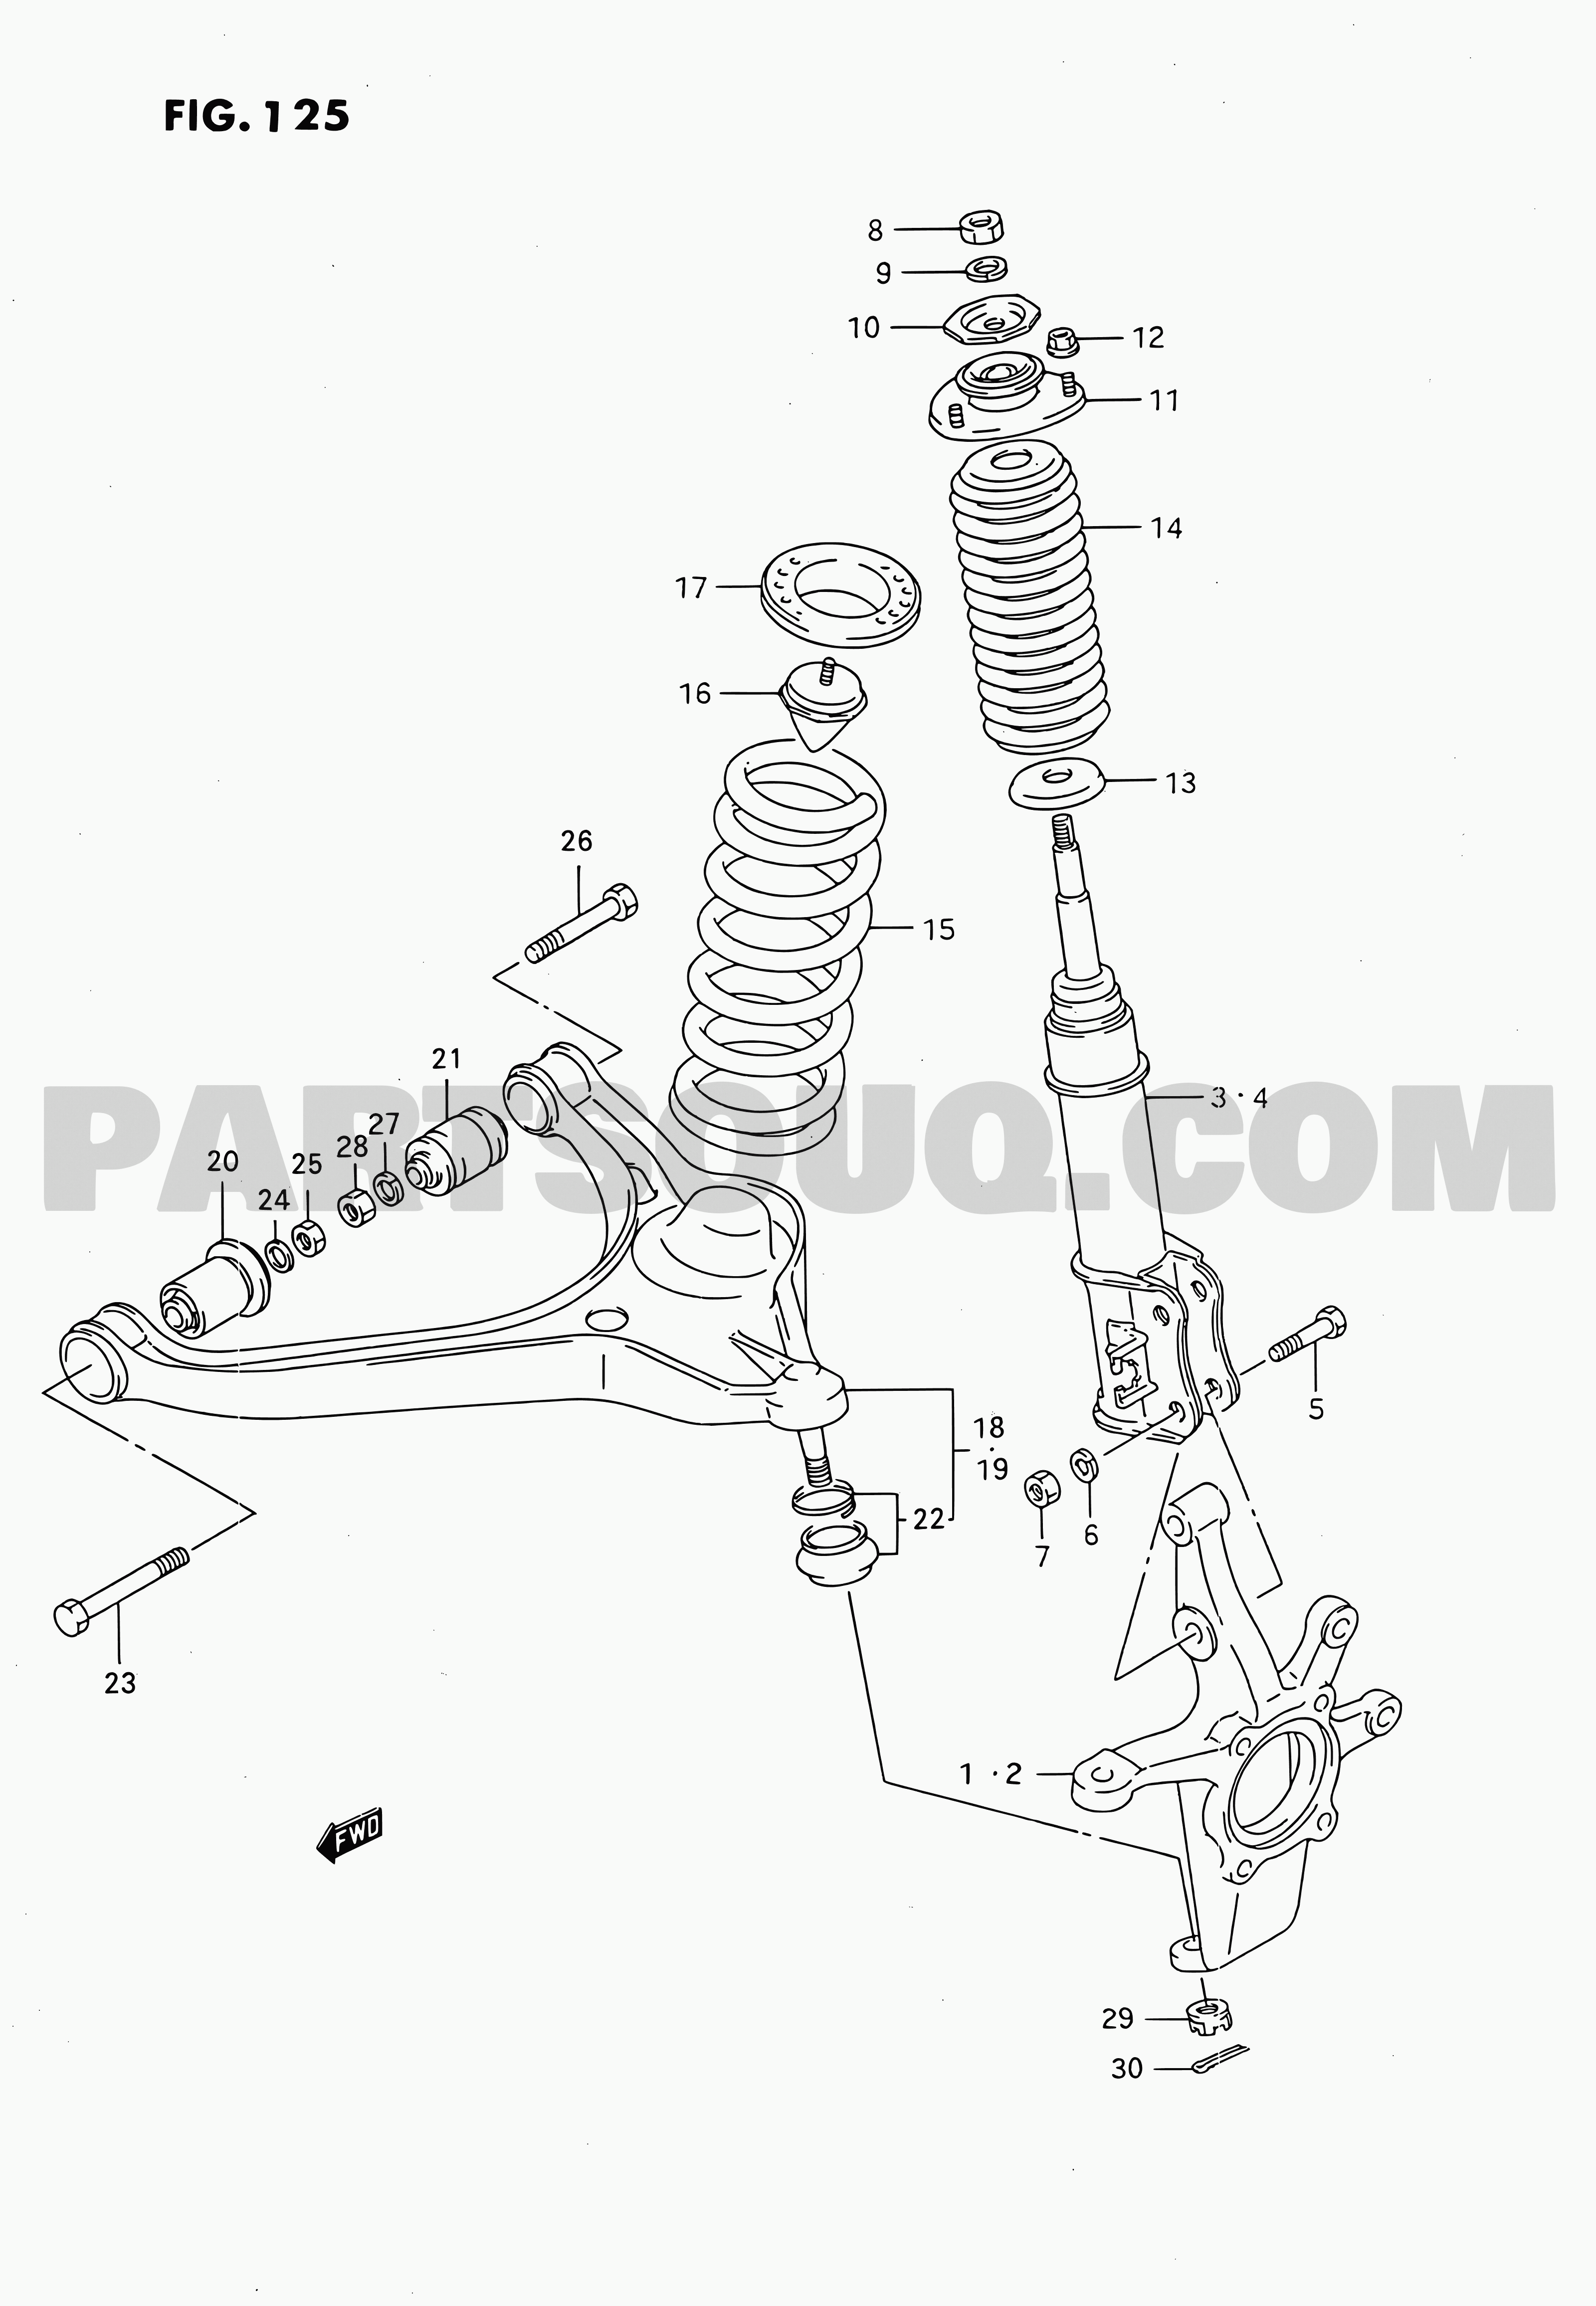 125 front suspension vitara sidekick sv620 sv620 suzuki 2015 Suzuki Samurai 125 front suspension vitara sidekick sv620 sv620 suzuki genuine parts catalogs partsouq auto parts around the world